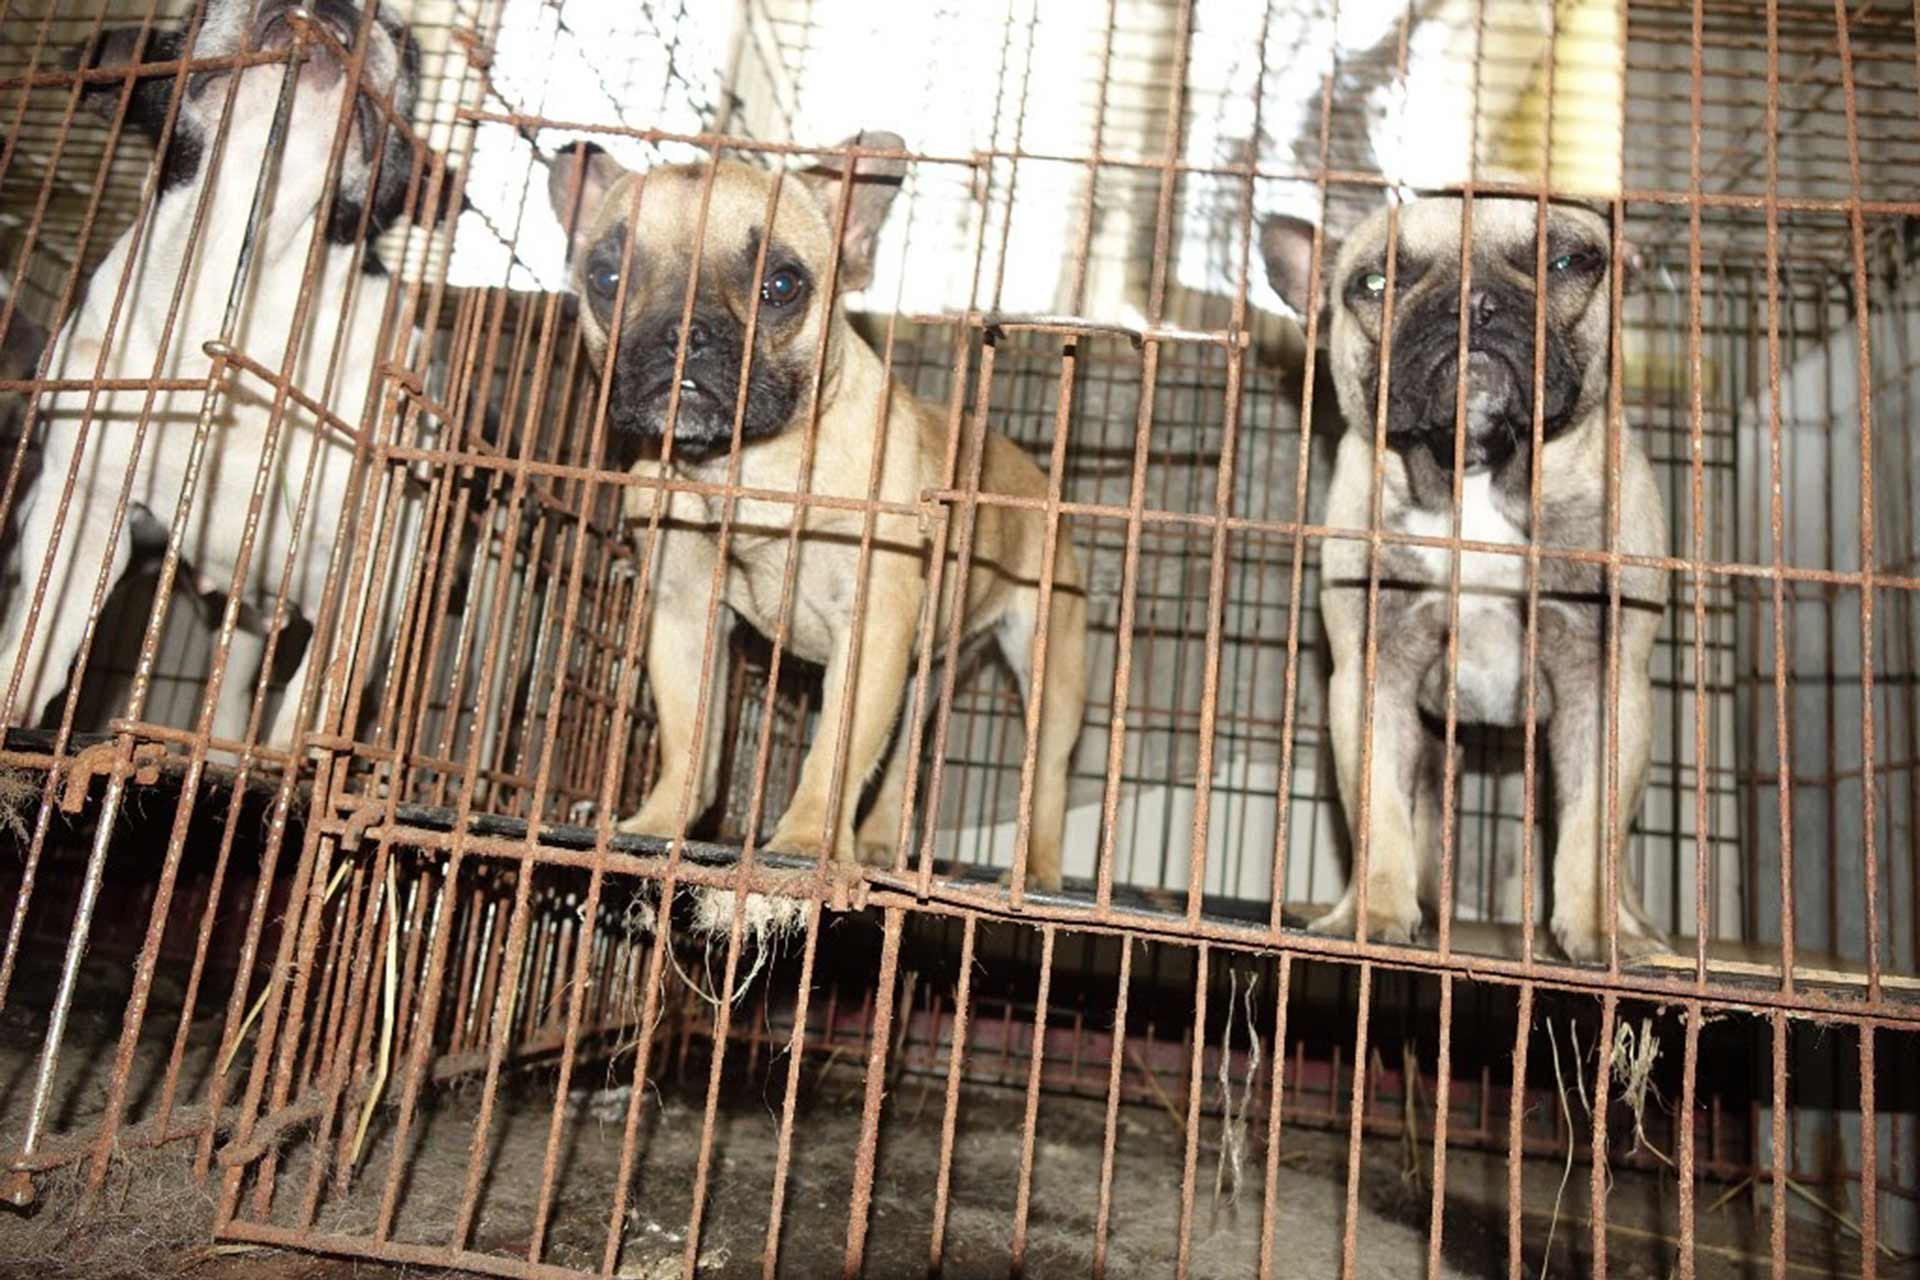 The Canine Connection: Europe's Illegal Dog Trade